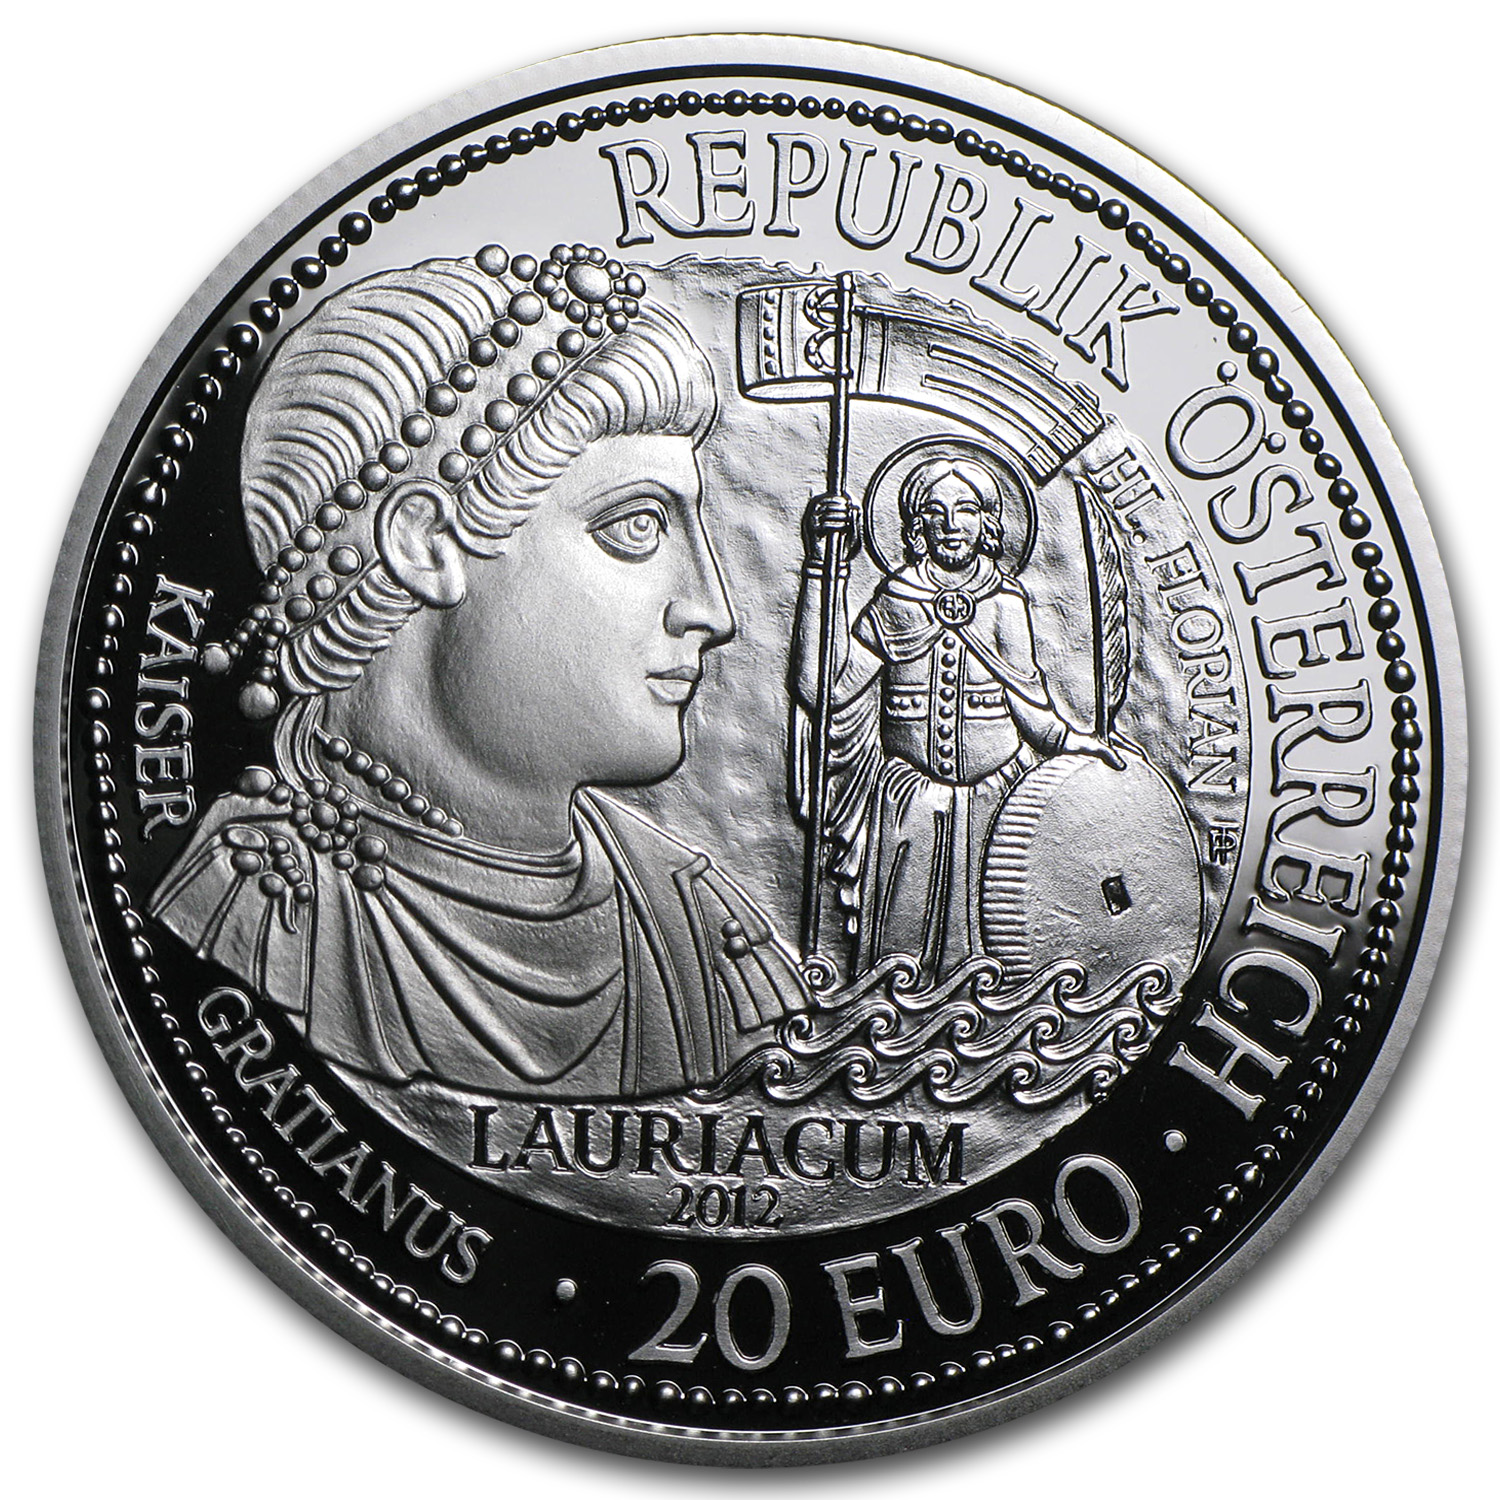 2012 Austria Silver €20 Lauriacum Proof